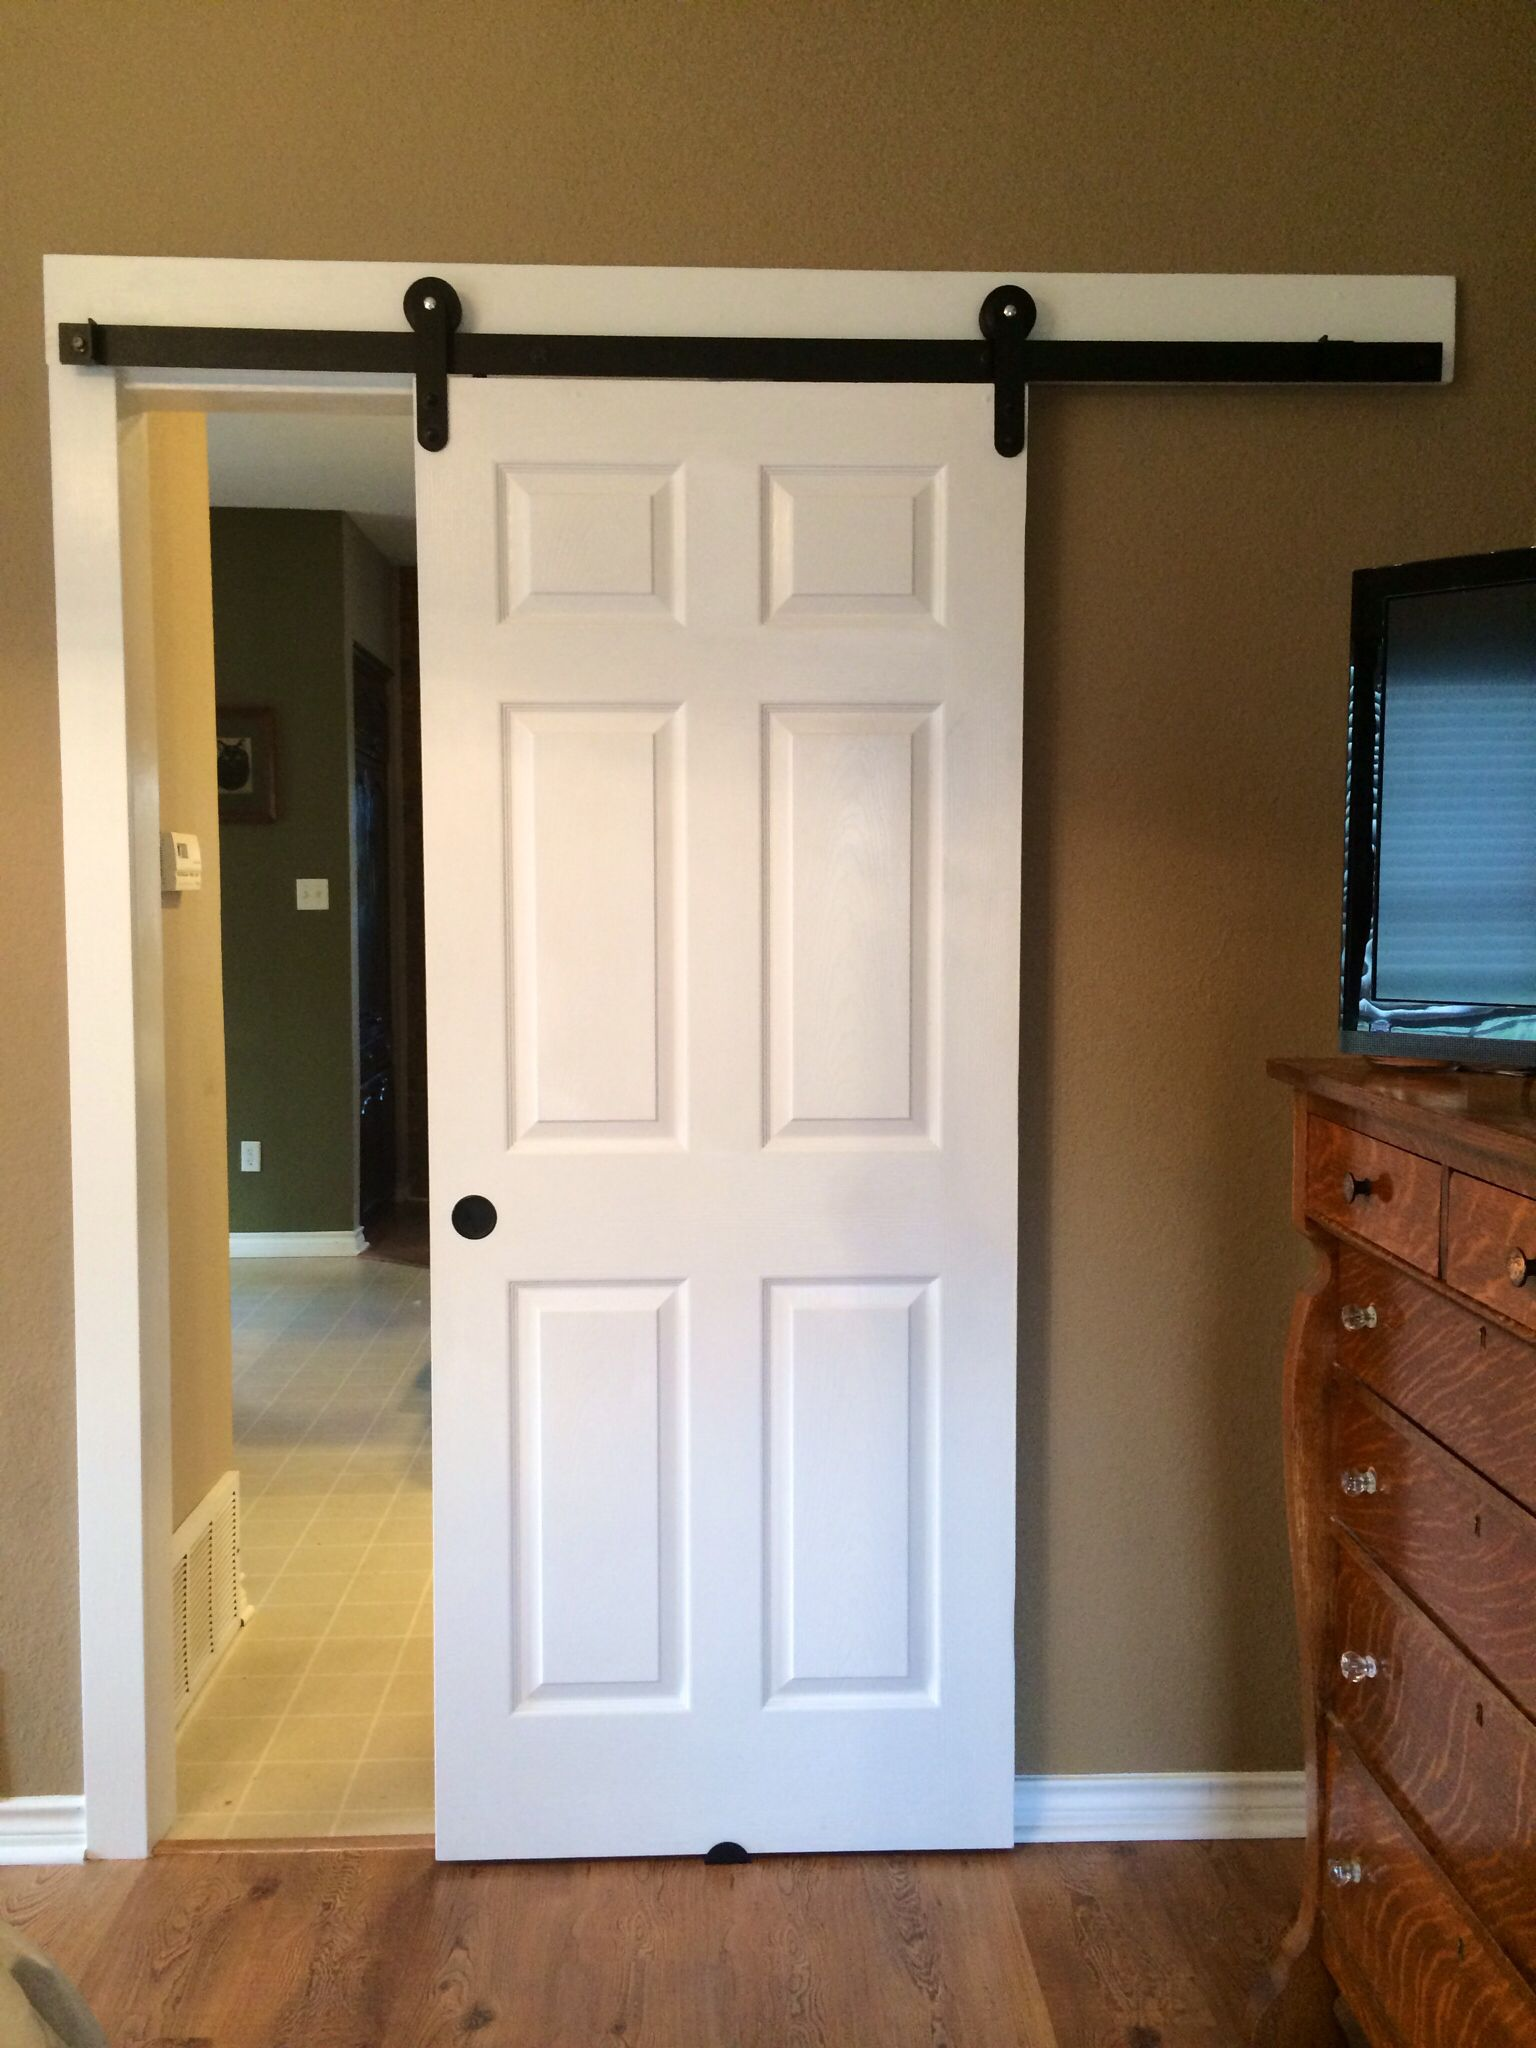 Love The Way It Turned Out Glad I Was Able To Use My Existing Door Just Filled Some Holes And Added A R Barn Door Installation Bedroom Door Handles Barn Door